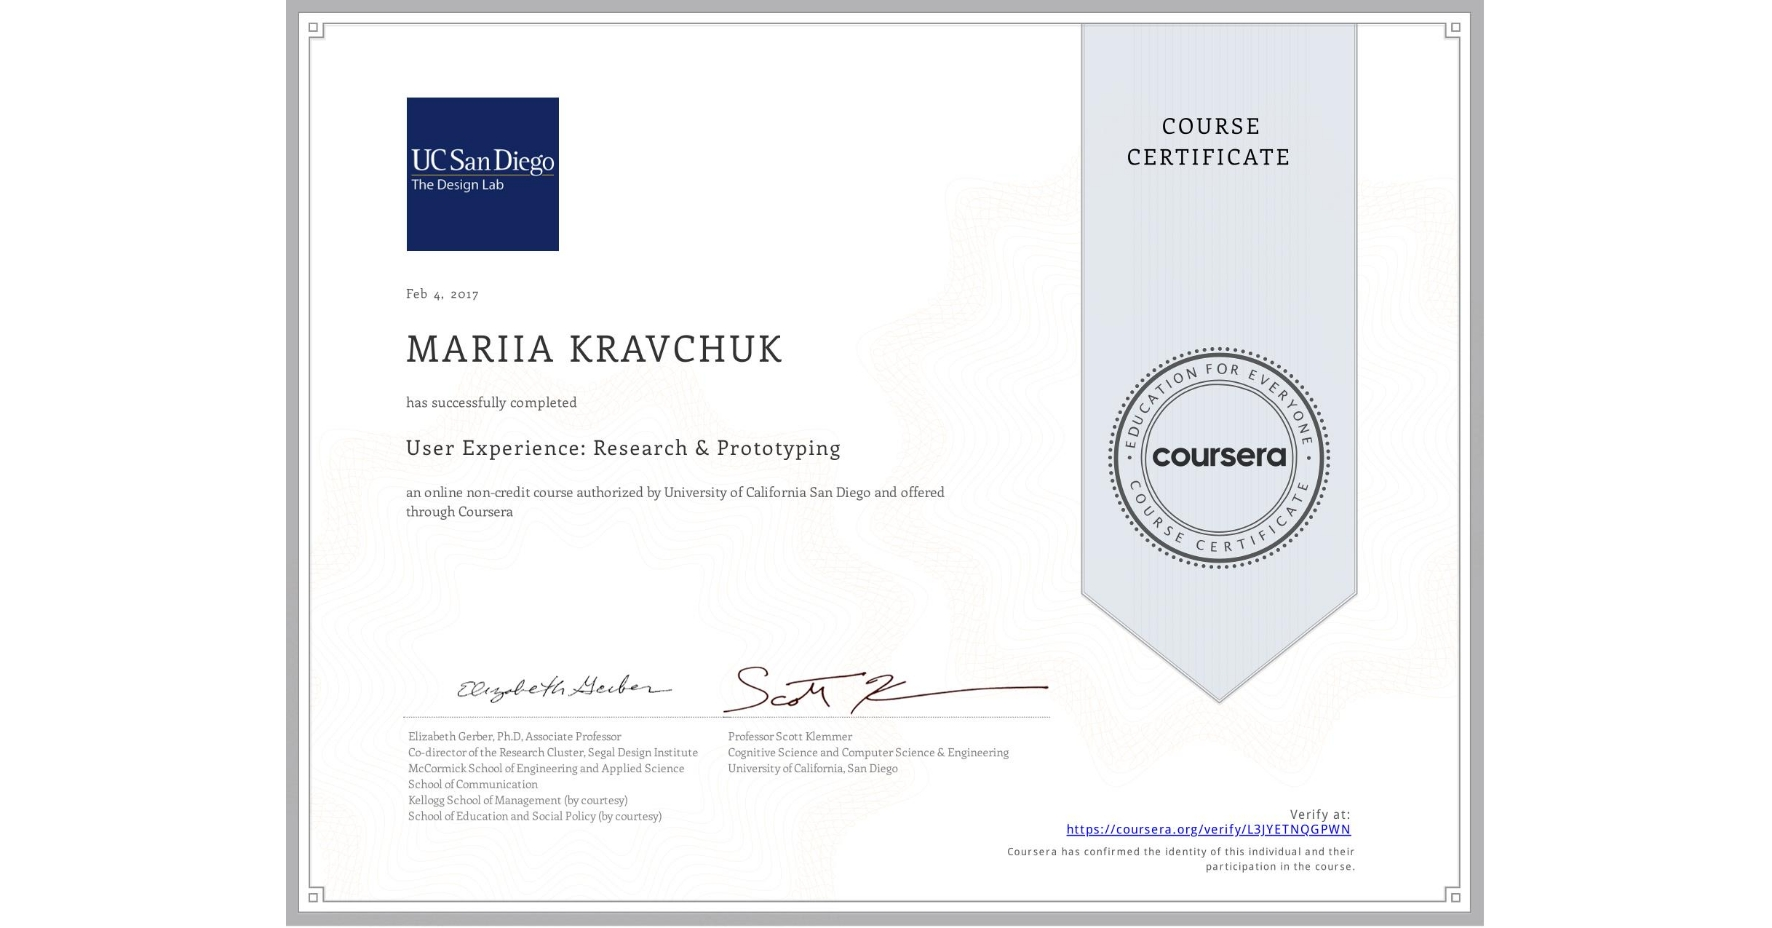 View certificate for MARIIA KRAVCHUK, User Experience: Research & Prototyping, an online non-credit course authorized by University of California San Diego and offered through Coursera